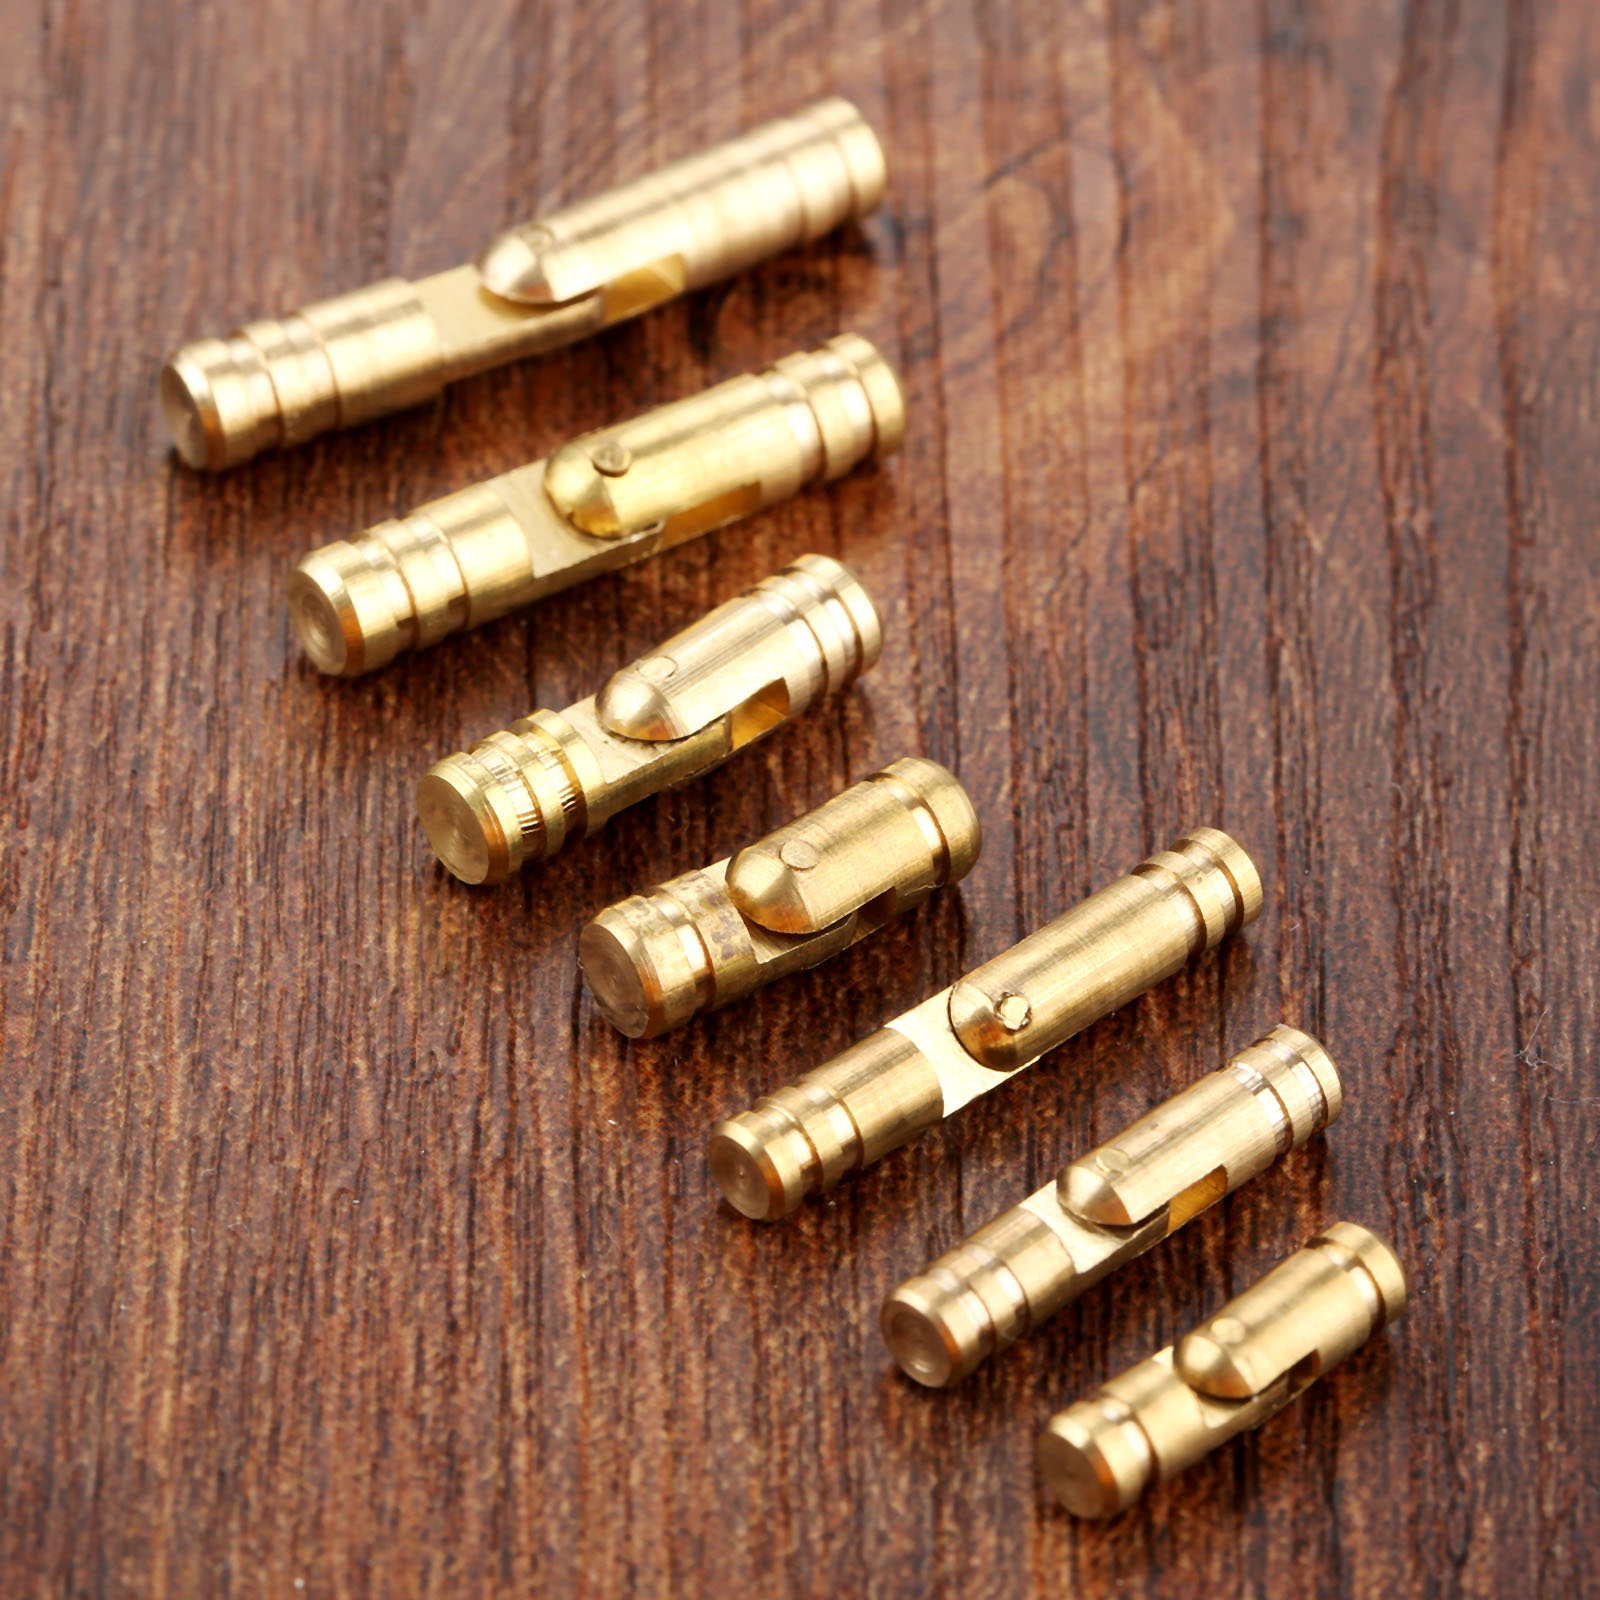 4Pcs Cylinder Brass Copper Invisible Concealed Barrel Hinge Bolt Jewelry Wood Boxes Door Hinges Antique Furniture Hardware(China)